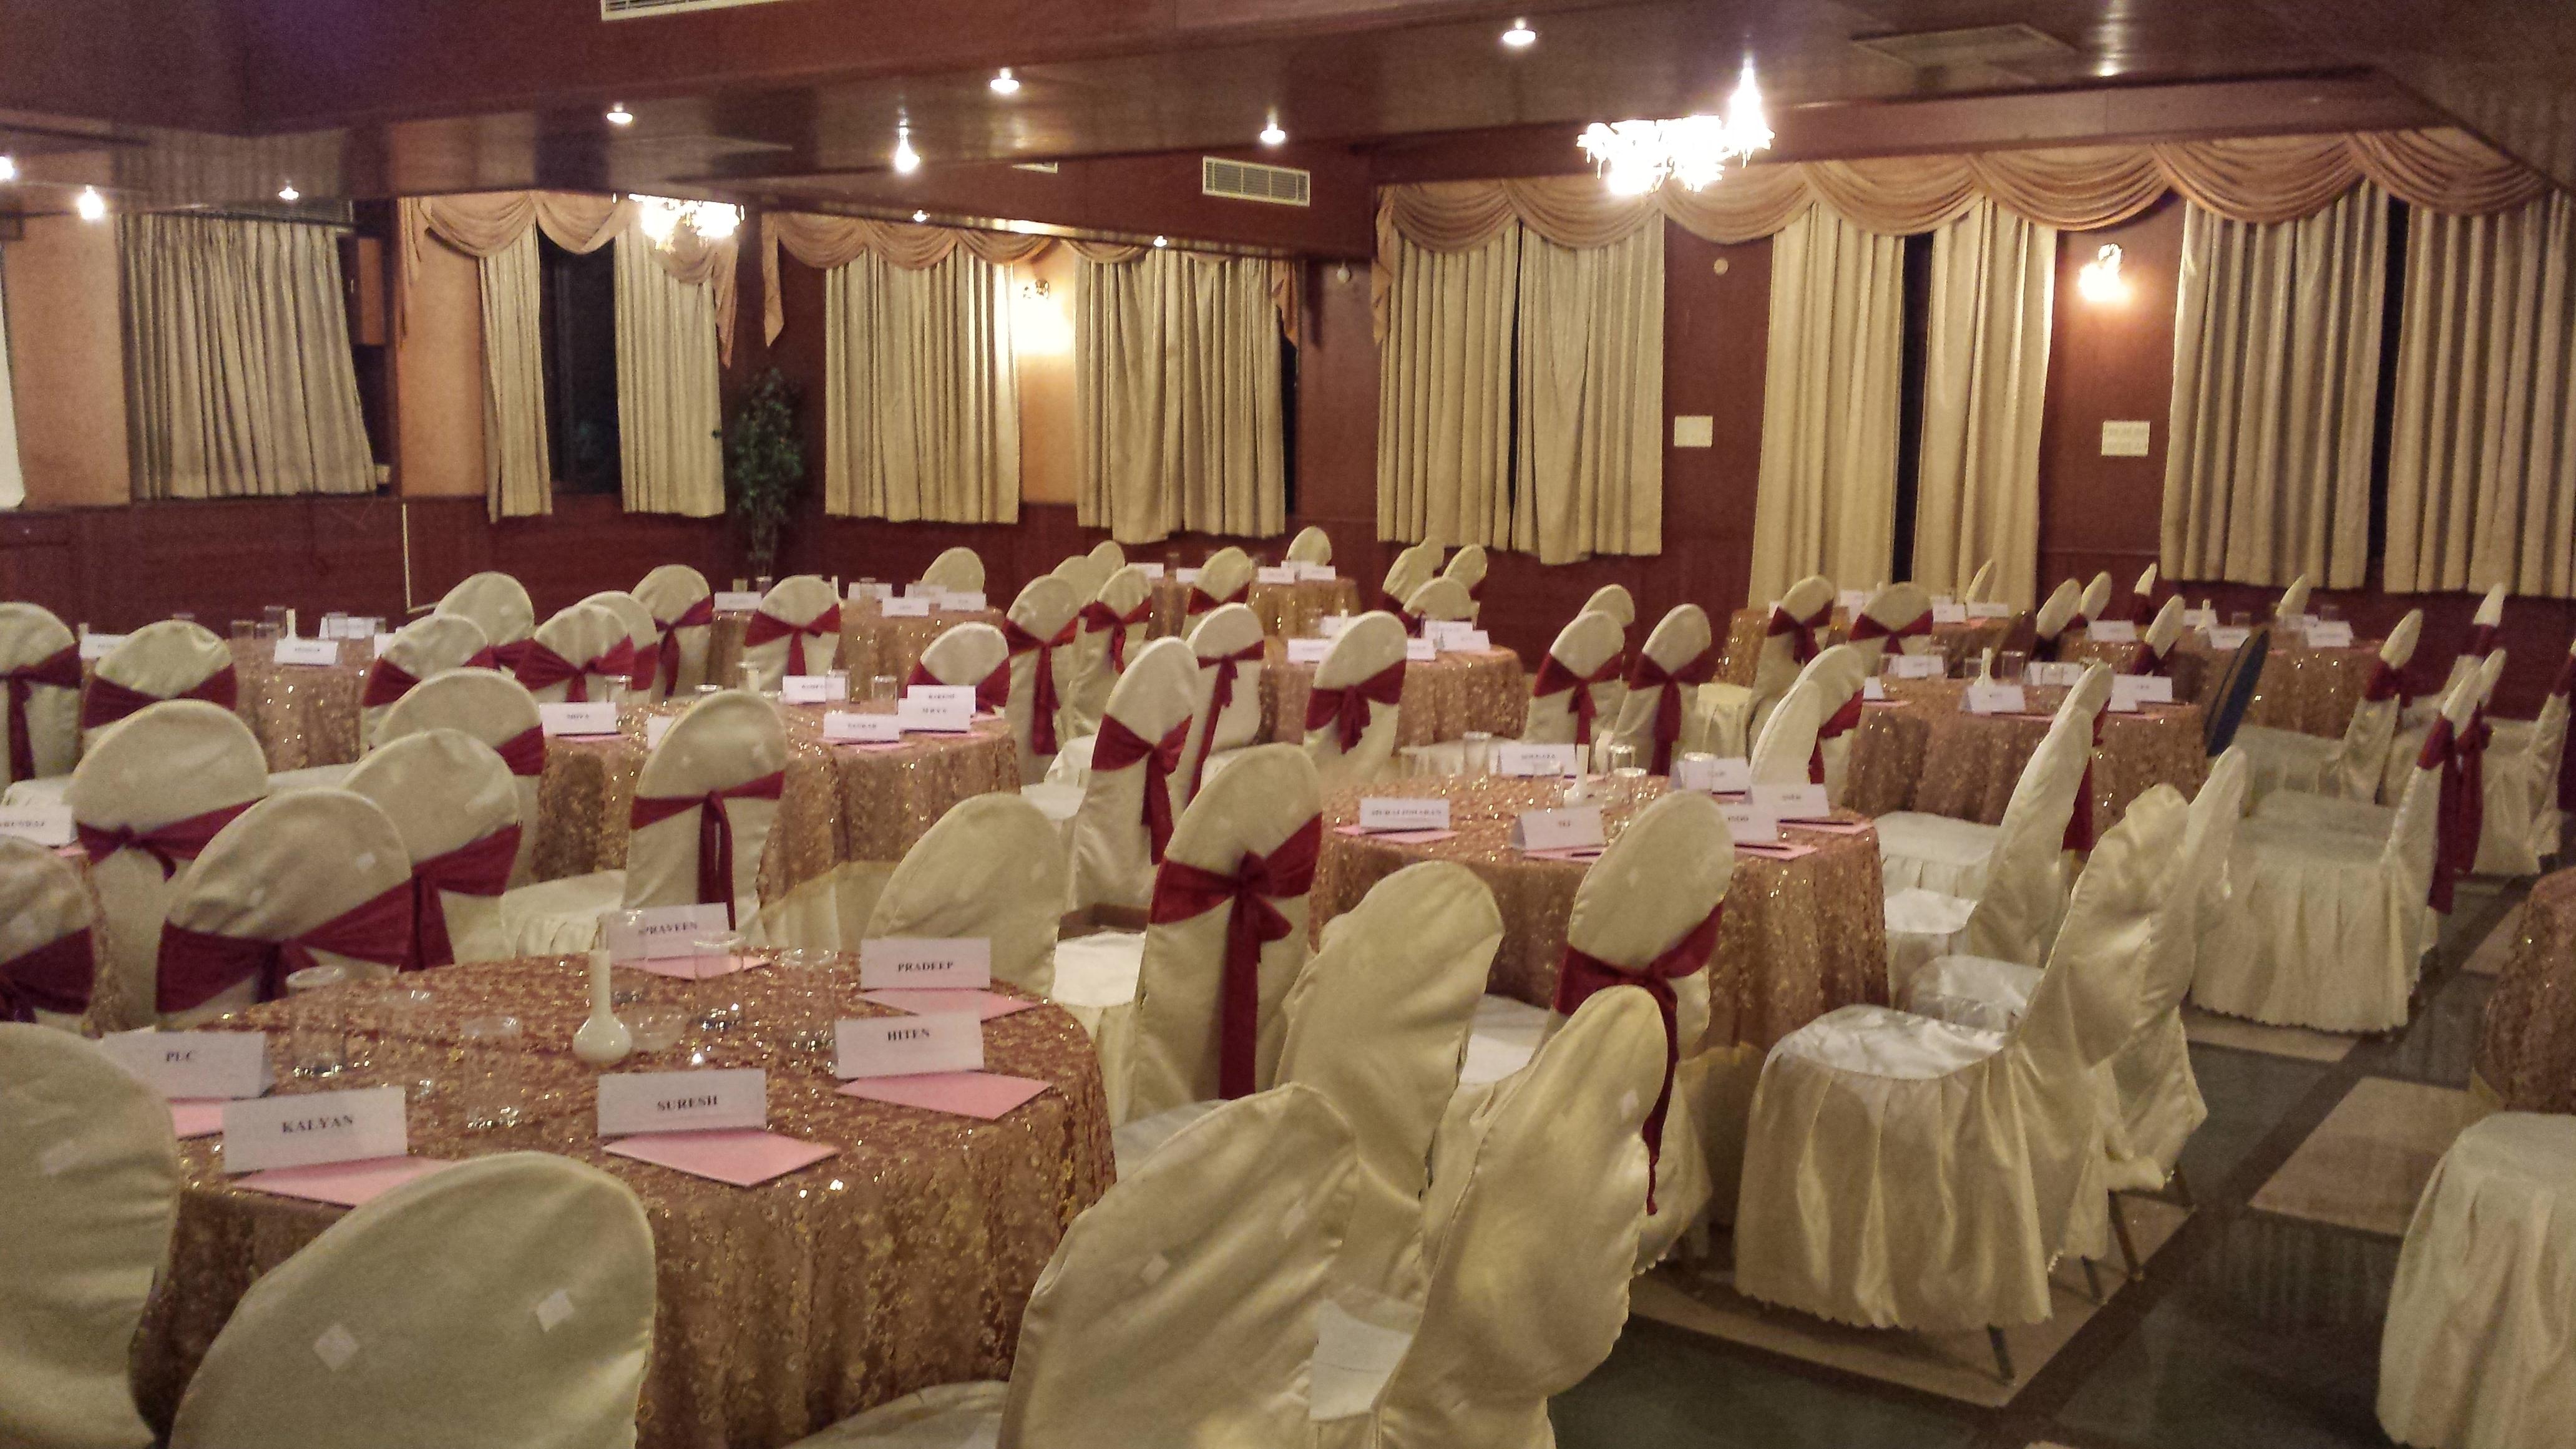 Outing Places around Hyderabad  Welcome to Celebrity Resort Hyderabad ( Mobile 9701322007 ) one of the most premium Resort & Hotel in shamirpet area Hyderabad a perfect place for your holiday at Hyderabad.  Ultra modern suites and Villas, Luxury rooms ensure your stay to be memorable and our well trained staff will add to your smiles. While the host of amenities like multi cuisine restaurant , Bar, indoor & out door activities , swimming pool , rain dance will pamper you to the hilt.  Also it has a lot of other facilities like marriage halls, conference halls, lush green lawns etc for all of your requirements. Call 9701322007 for any assistance.